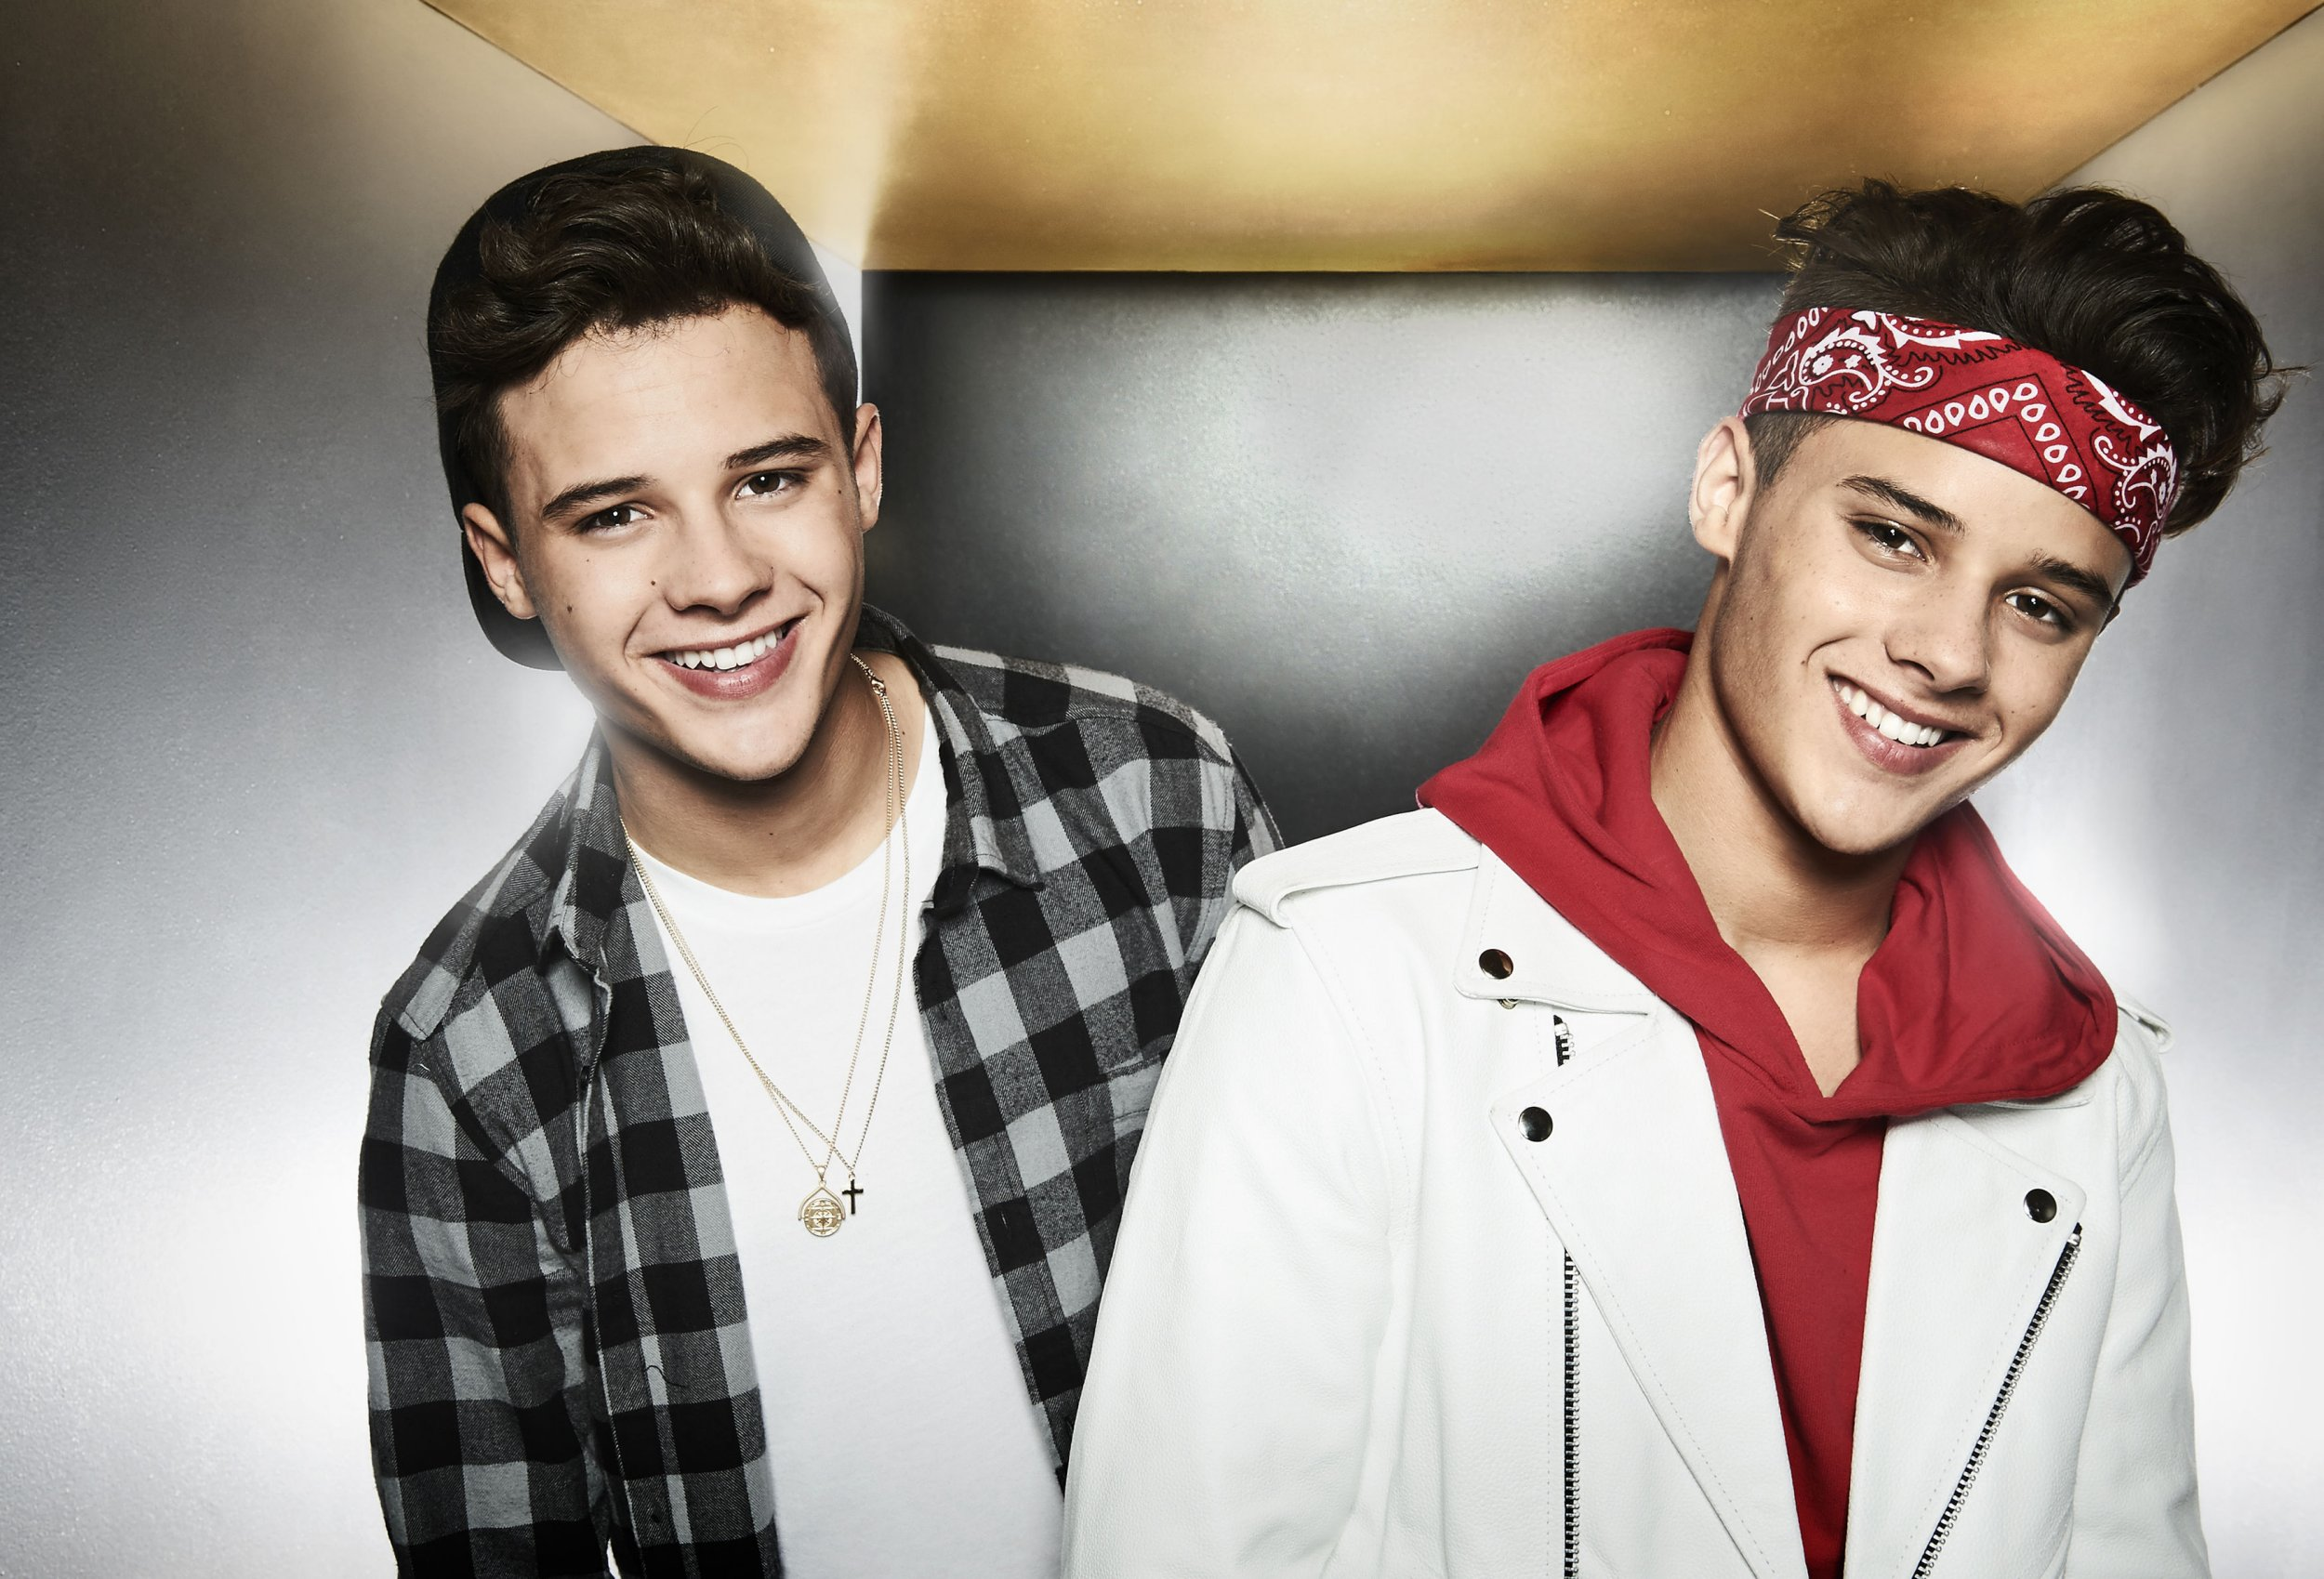 Former X Factor hopefuls Brooks Way are believed to be in contract talks with Syco (Picture: Syco/Thames/Burmiston/PA Wire)